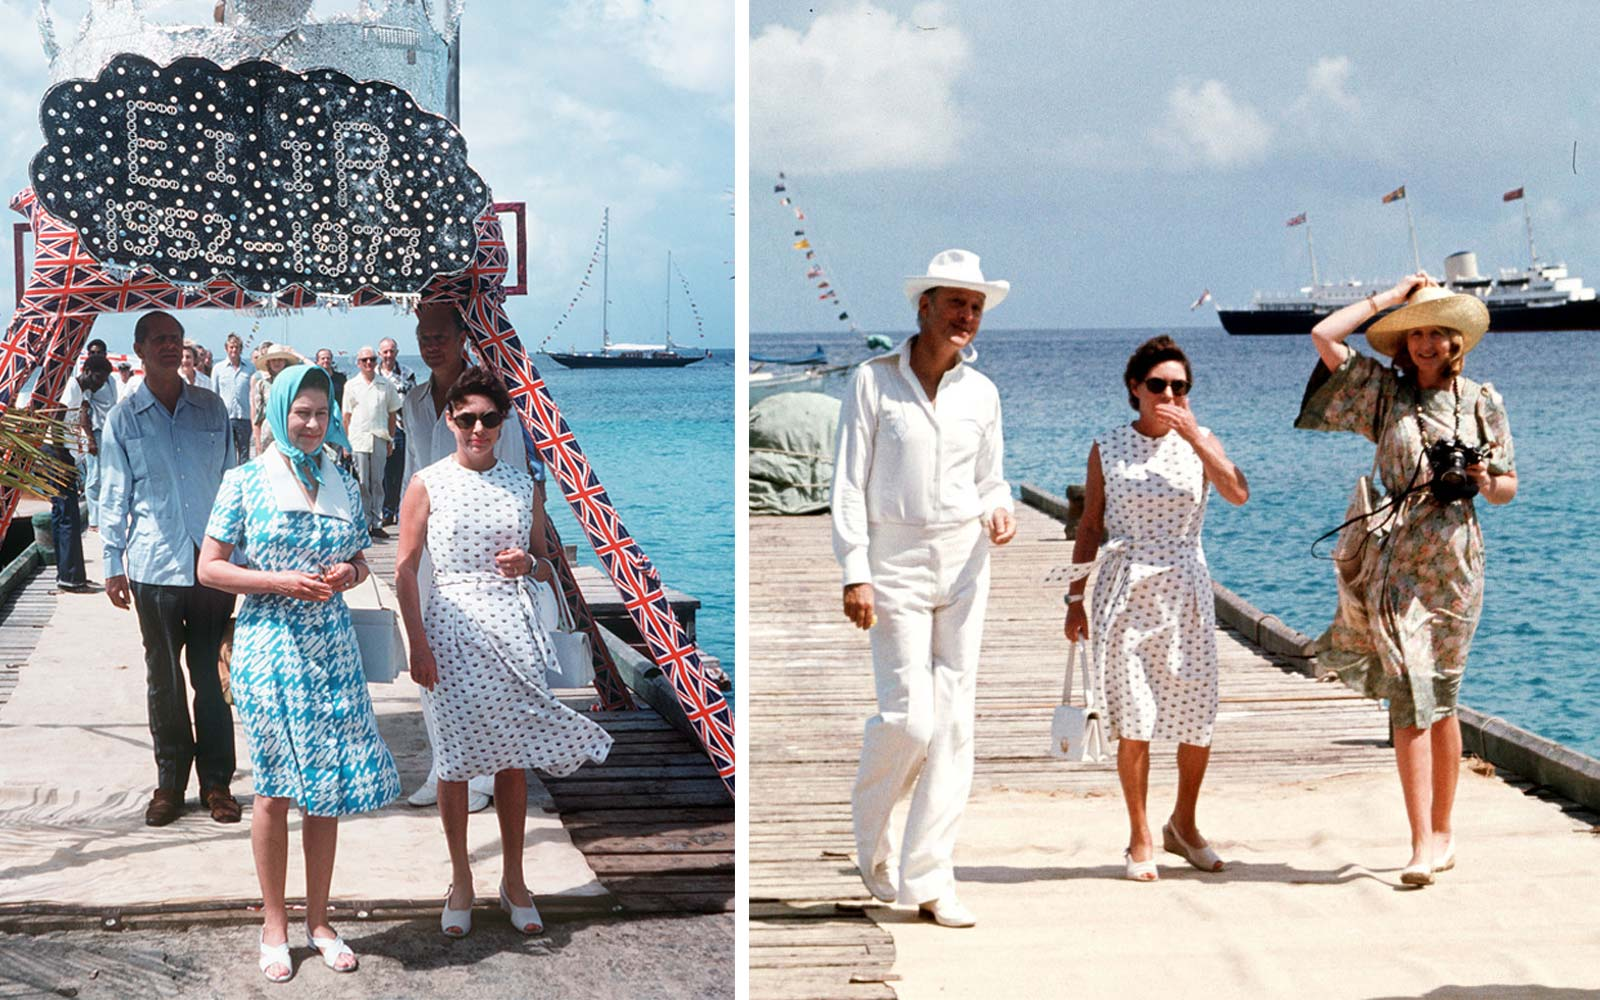 Queen Elizabeth II arrives in Mustique, Saint Vincent and is welcomed by Princess Margaret